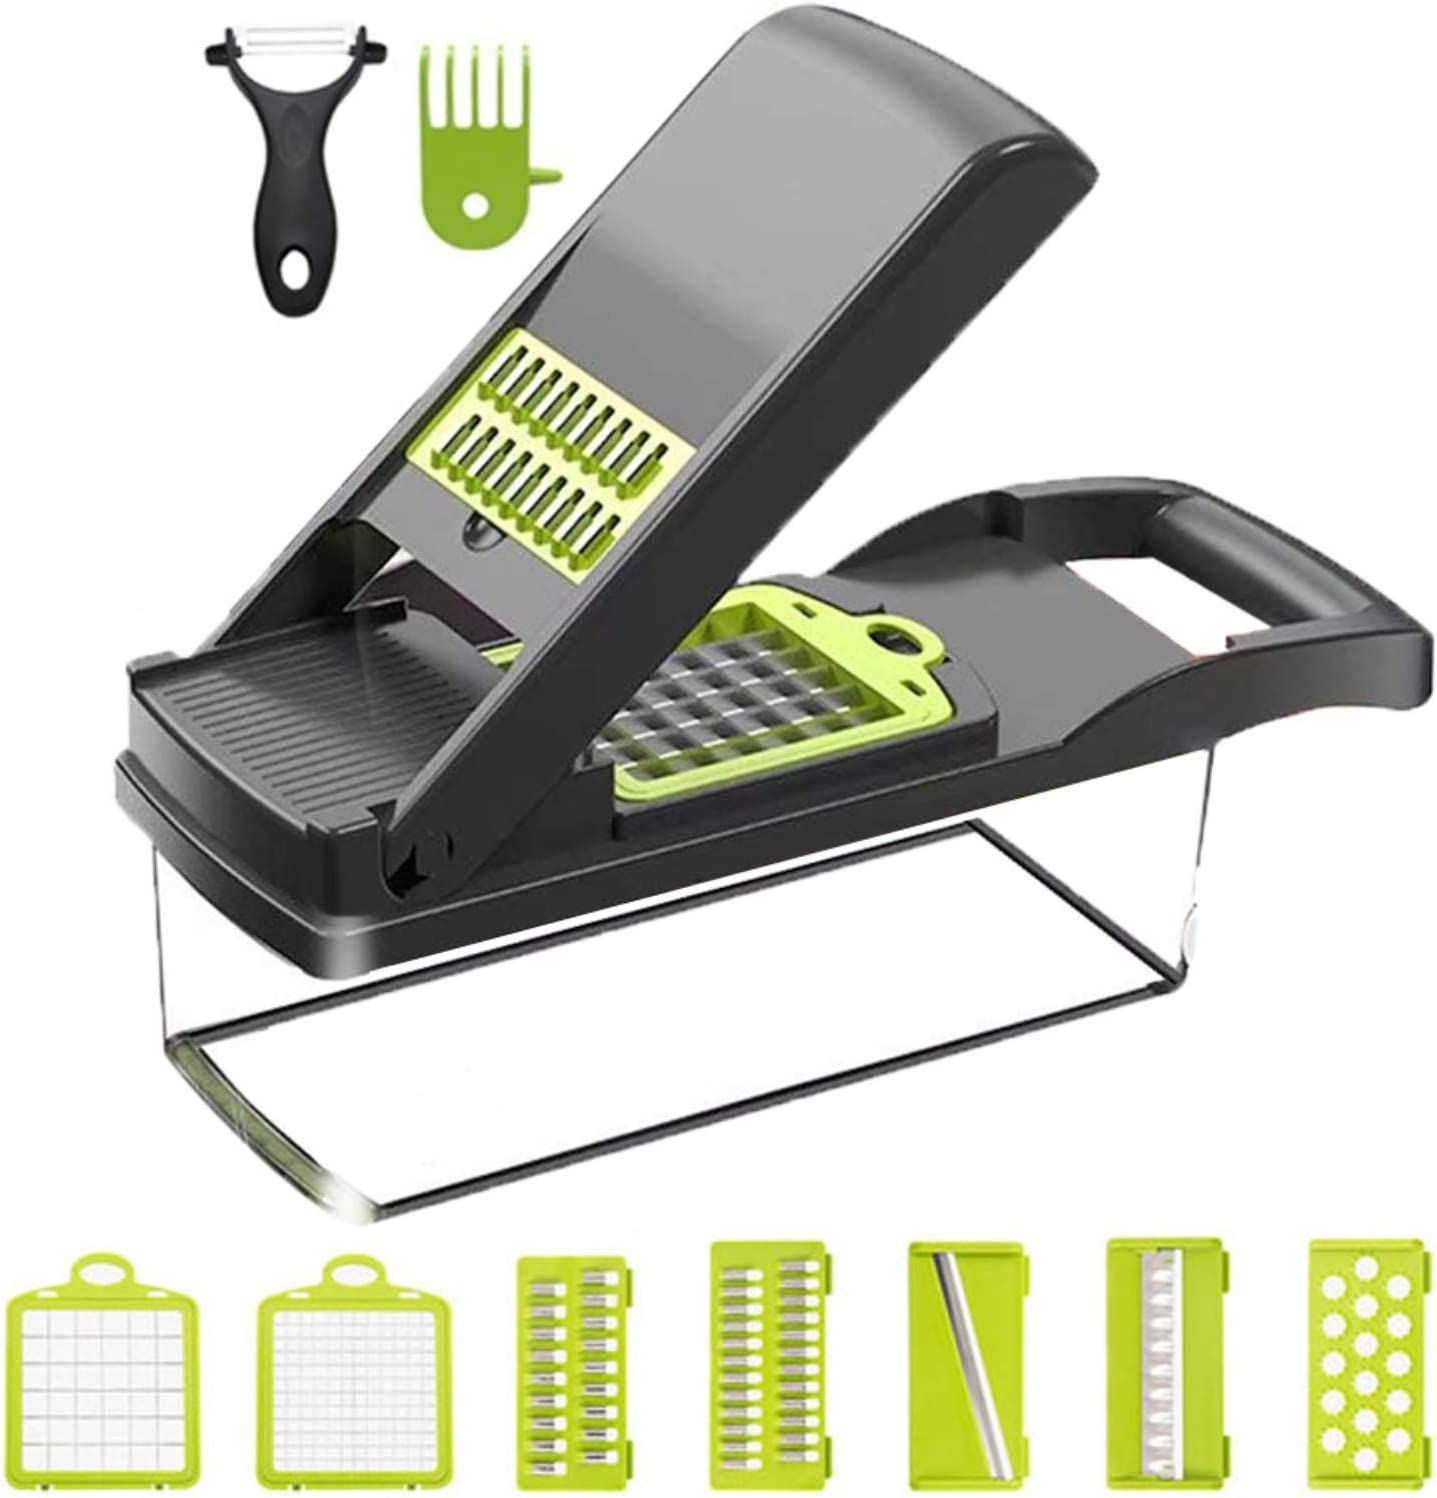 Mevis Line Vegetable Chopper and Mandoline Slicer - easiest way to prep your food. Perfect as Onion Chopper or Potato Cutter